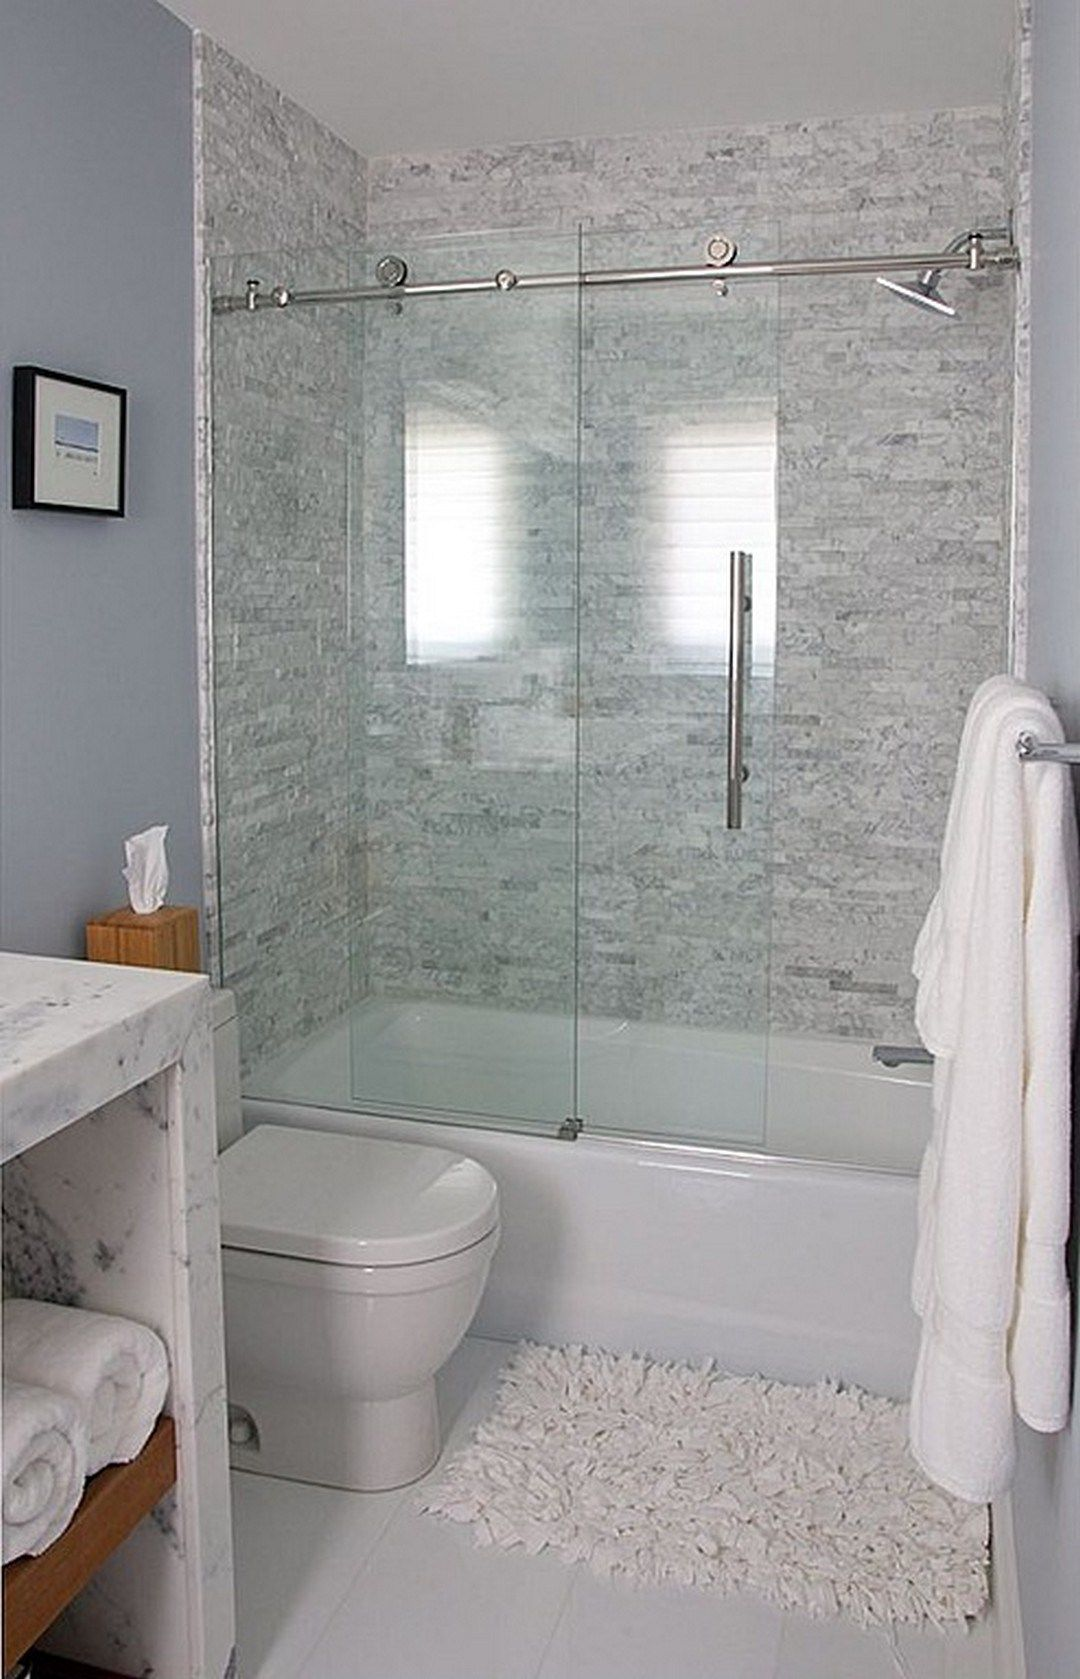 65+ Small Bathroom Remodel Ideas for Washing in Style ...